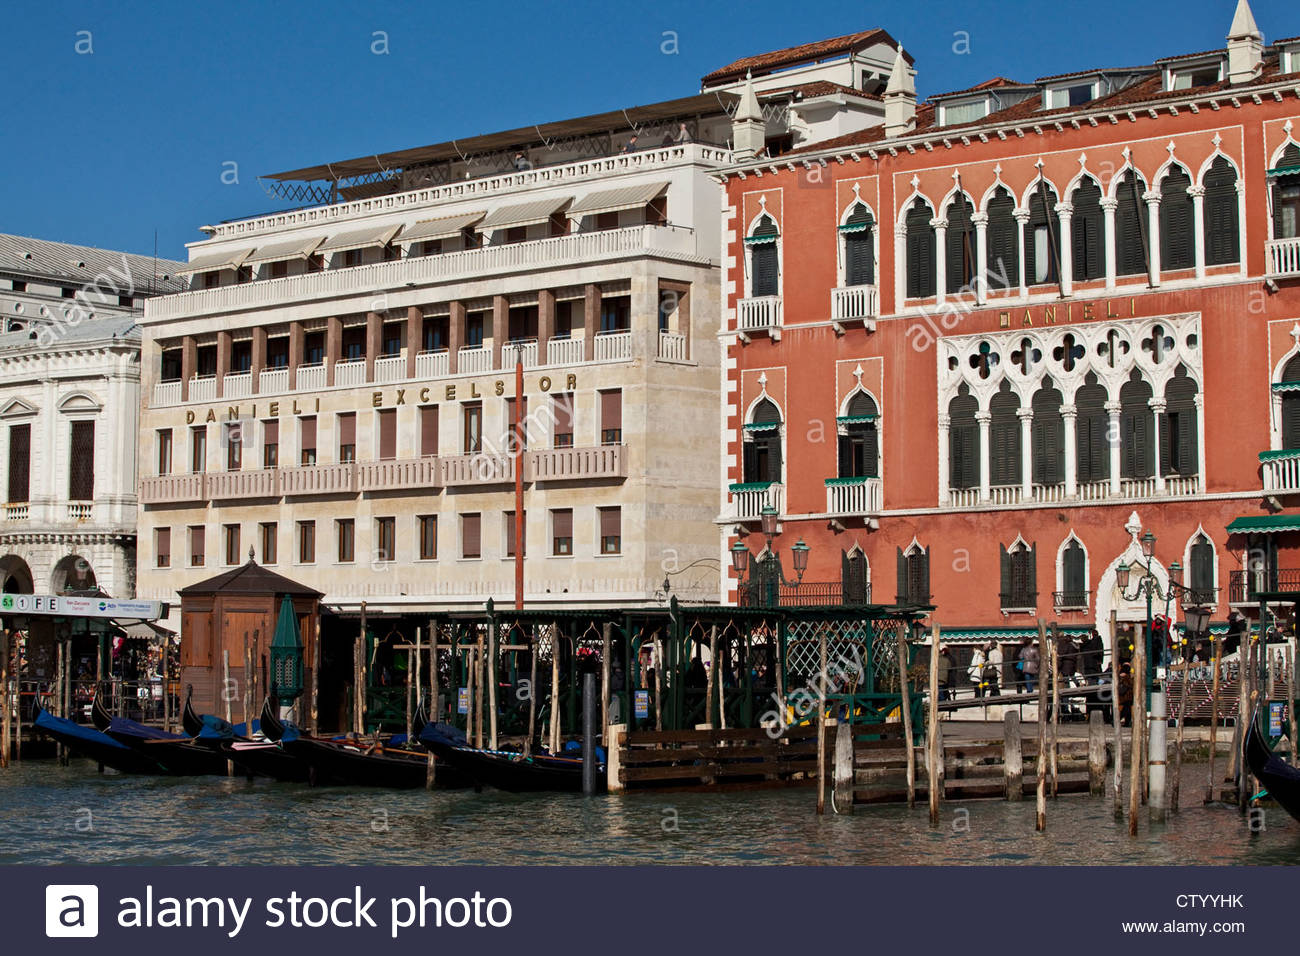 The Danieli And Danieli Excelsior Hotels Venice Italy